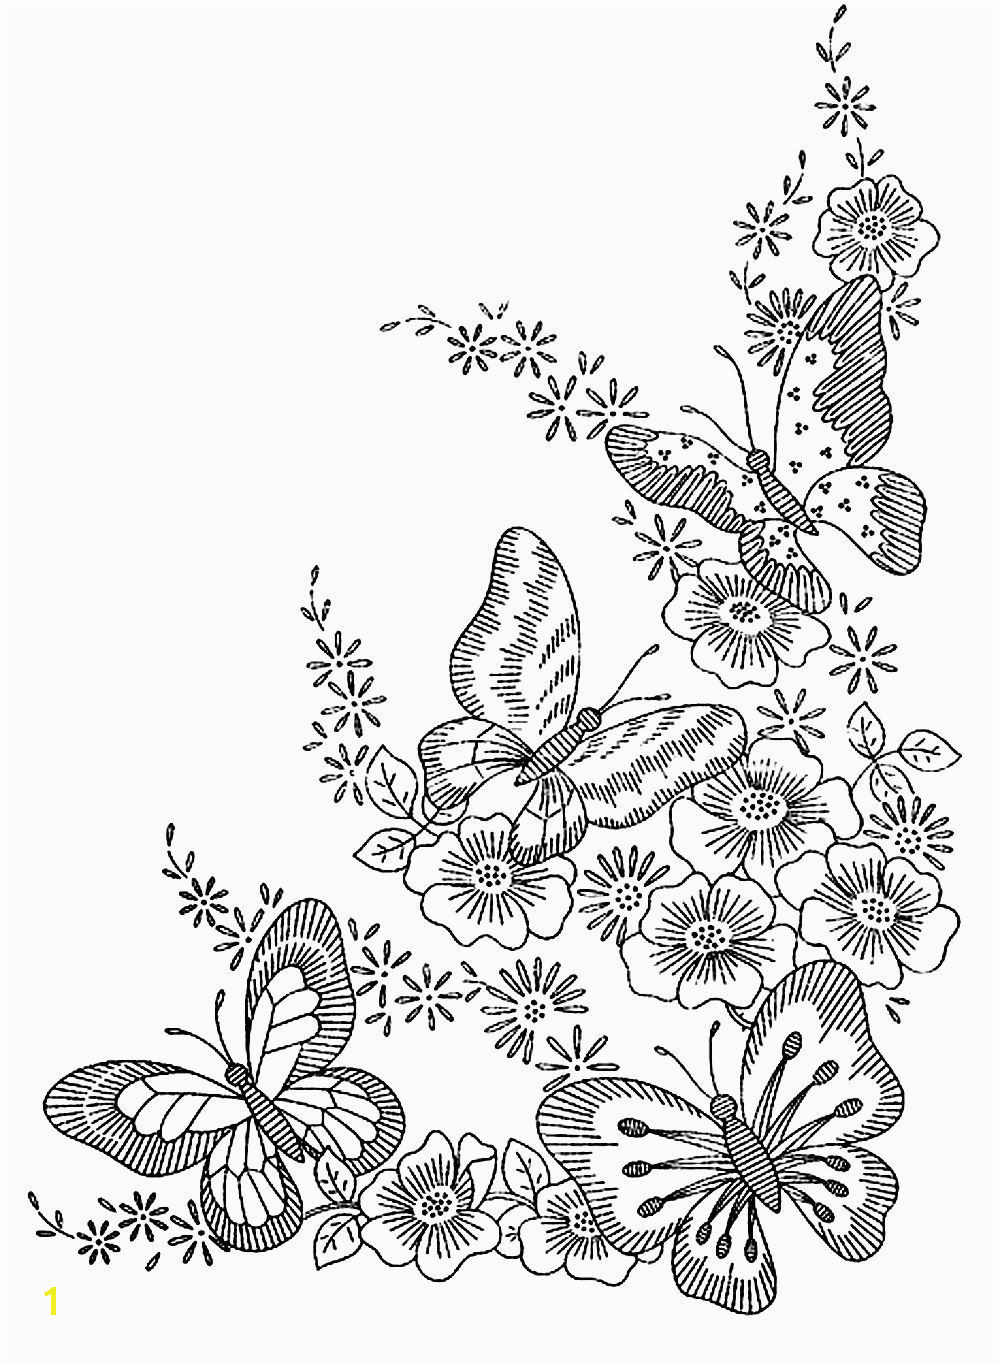 Spring Flowers Coloring Pages Pdf to Print This Free Coloring Page Coloring Adult Difficult